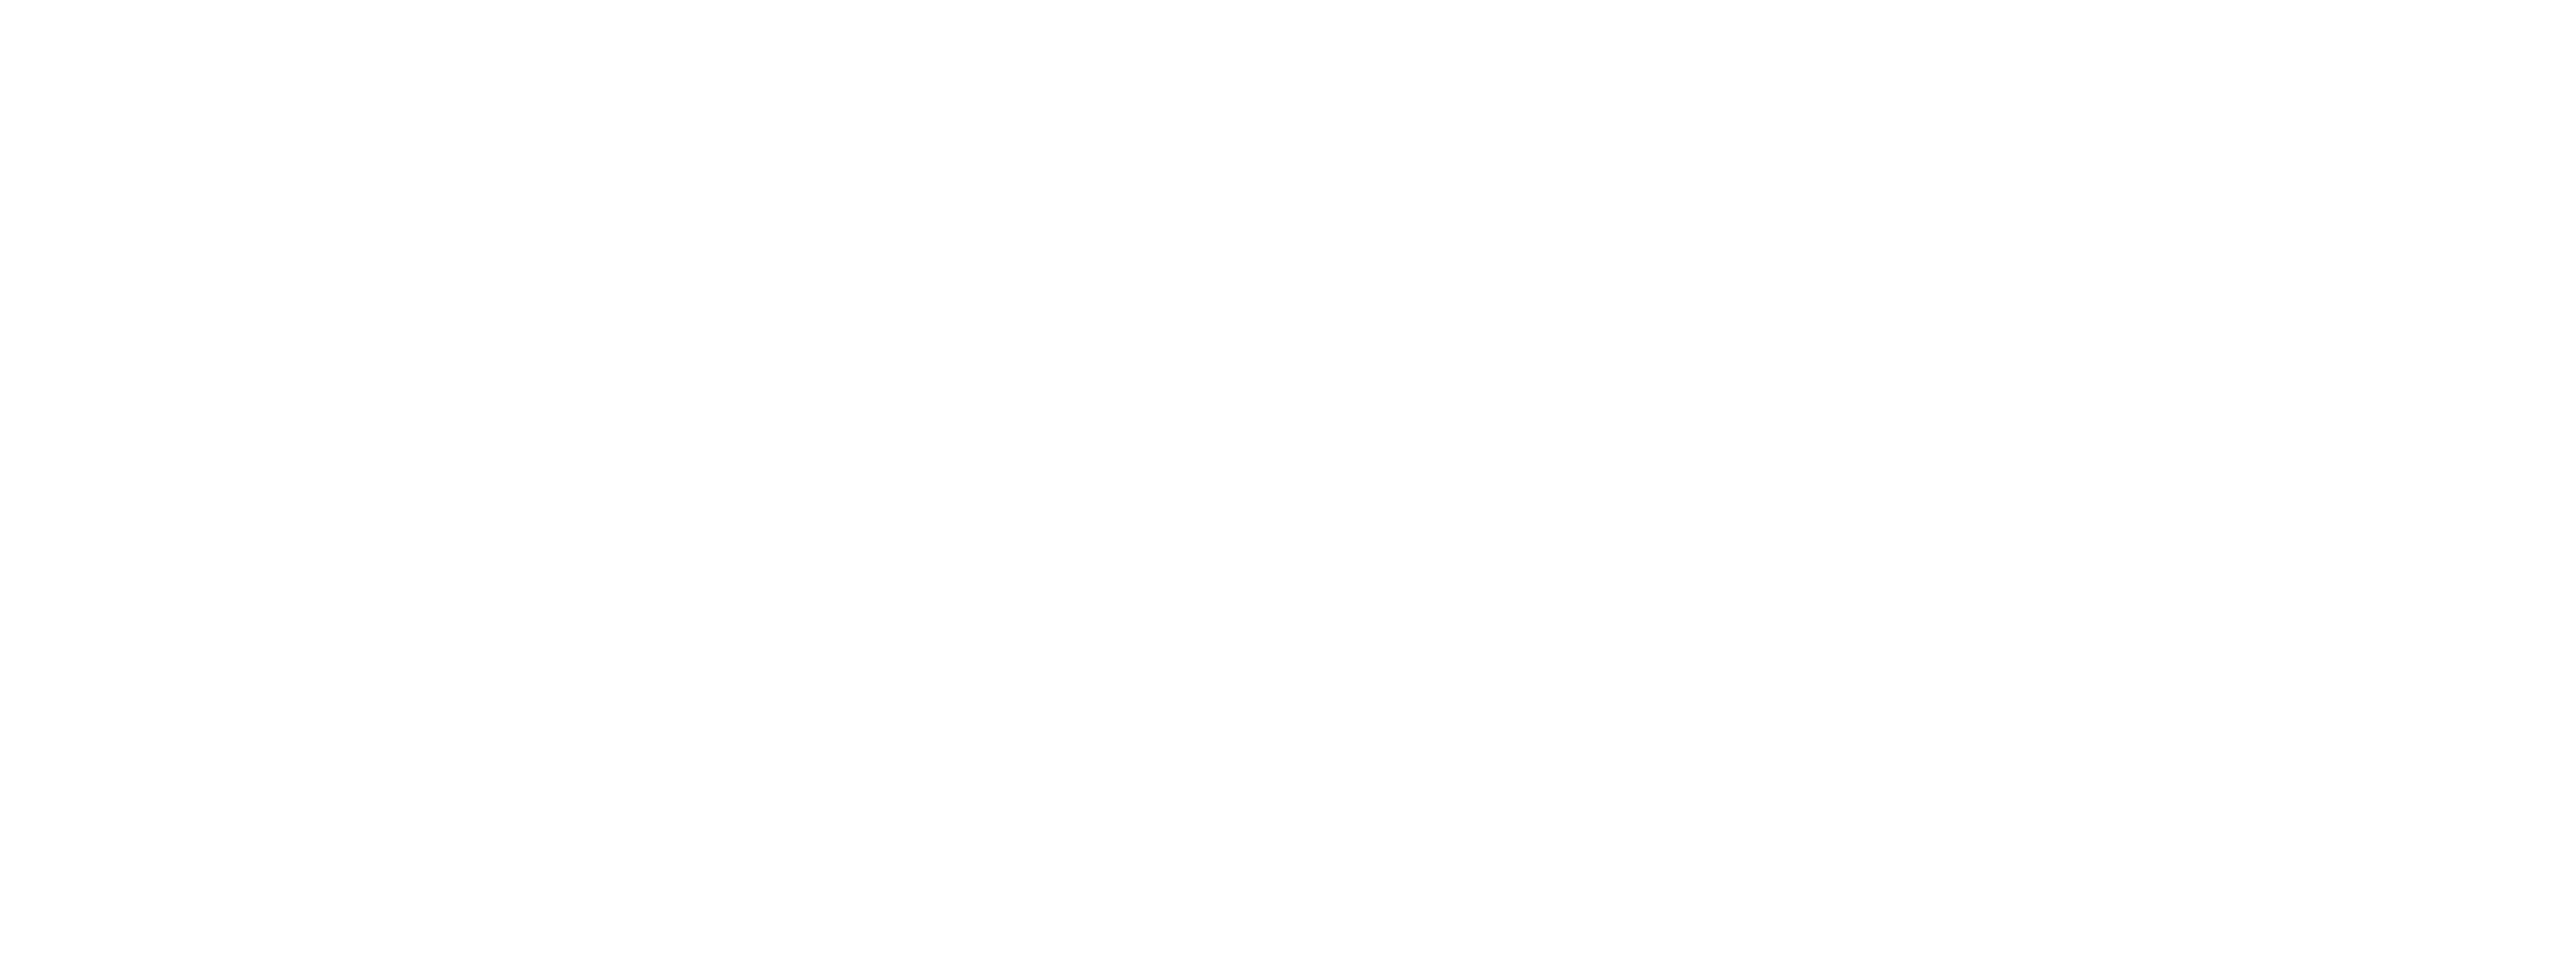 the logo of NCSA